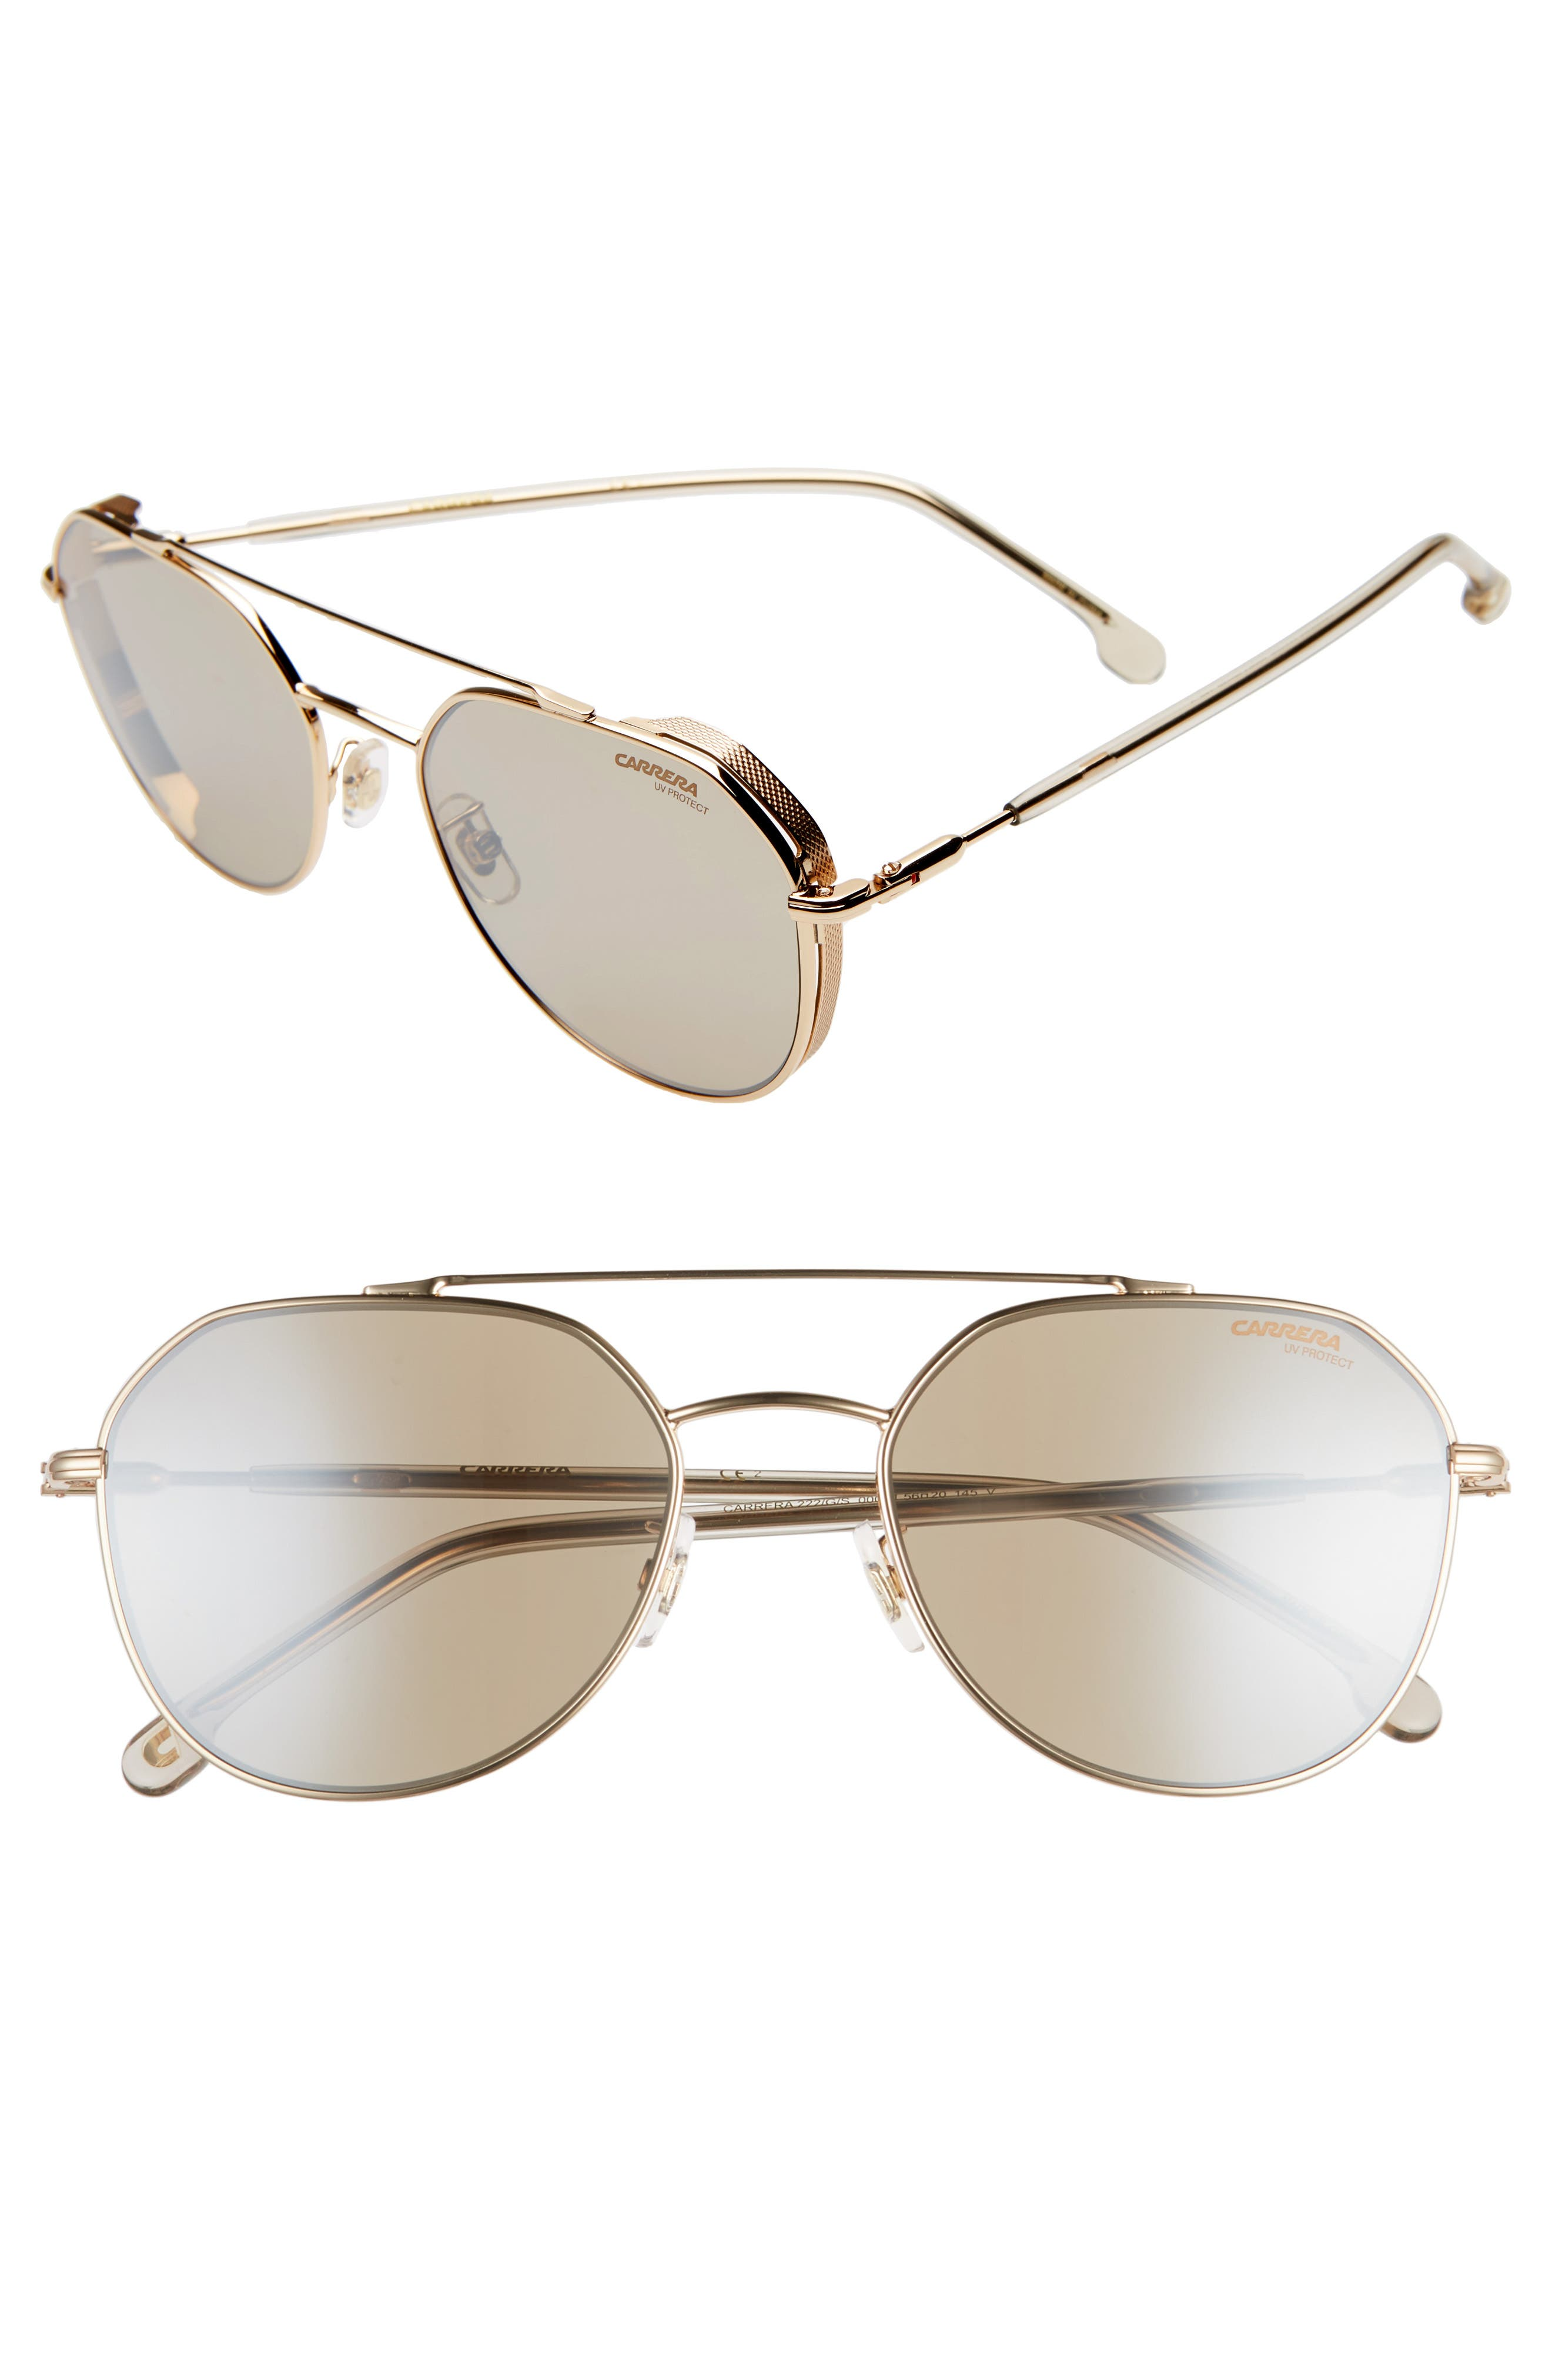 Polished stainless steel frames define lightweight sunglasses fitted with smart polarized lenses for high-quality vision protection. Style Name: Carrera Eyewear 56mm Polarized Aviator Sunglasses. Style Number: 6022333. Available in stores.